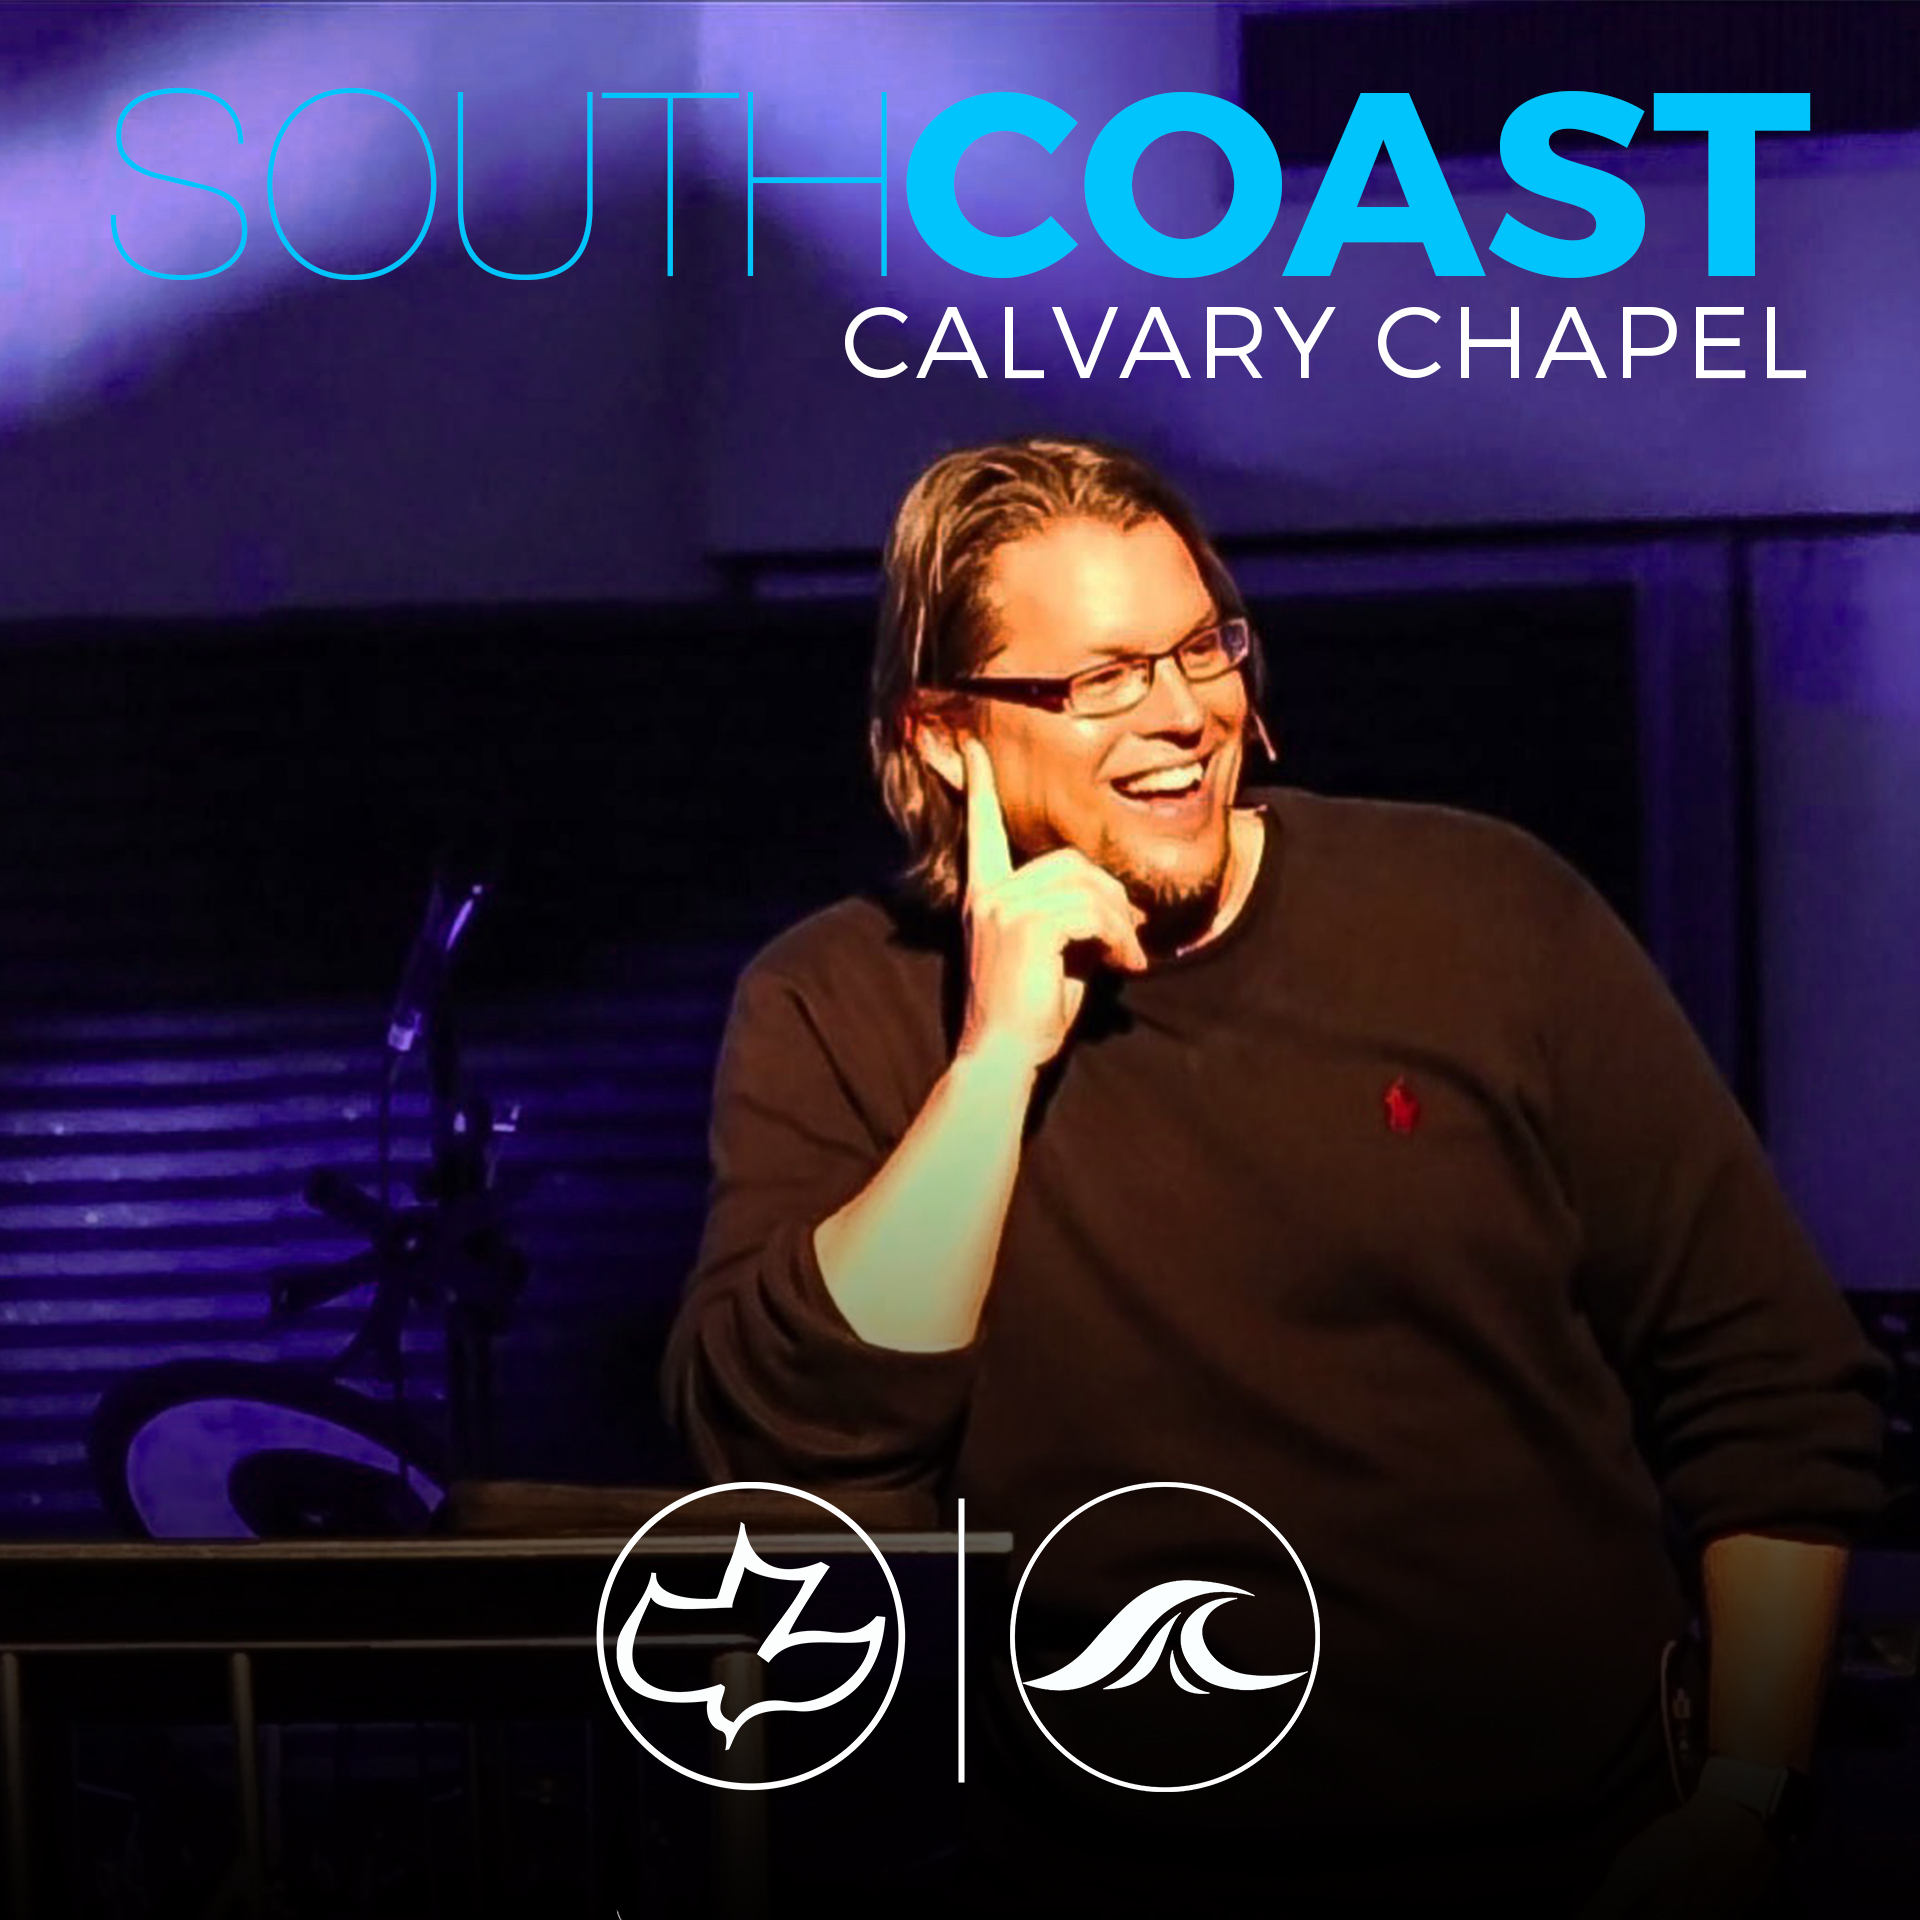 South Coast Calvary Chapel Audio Podcast